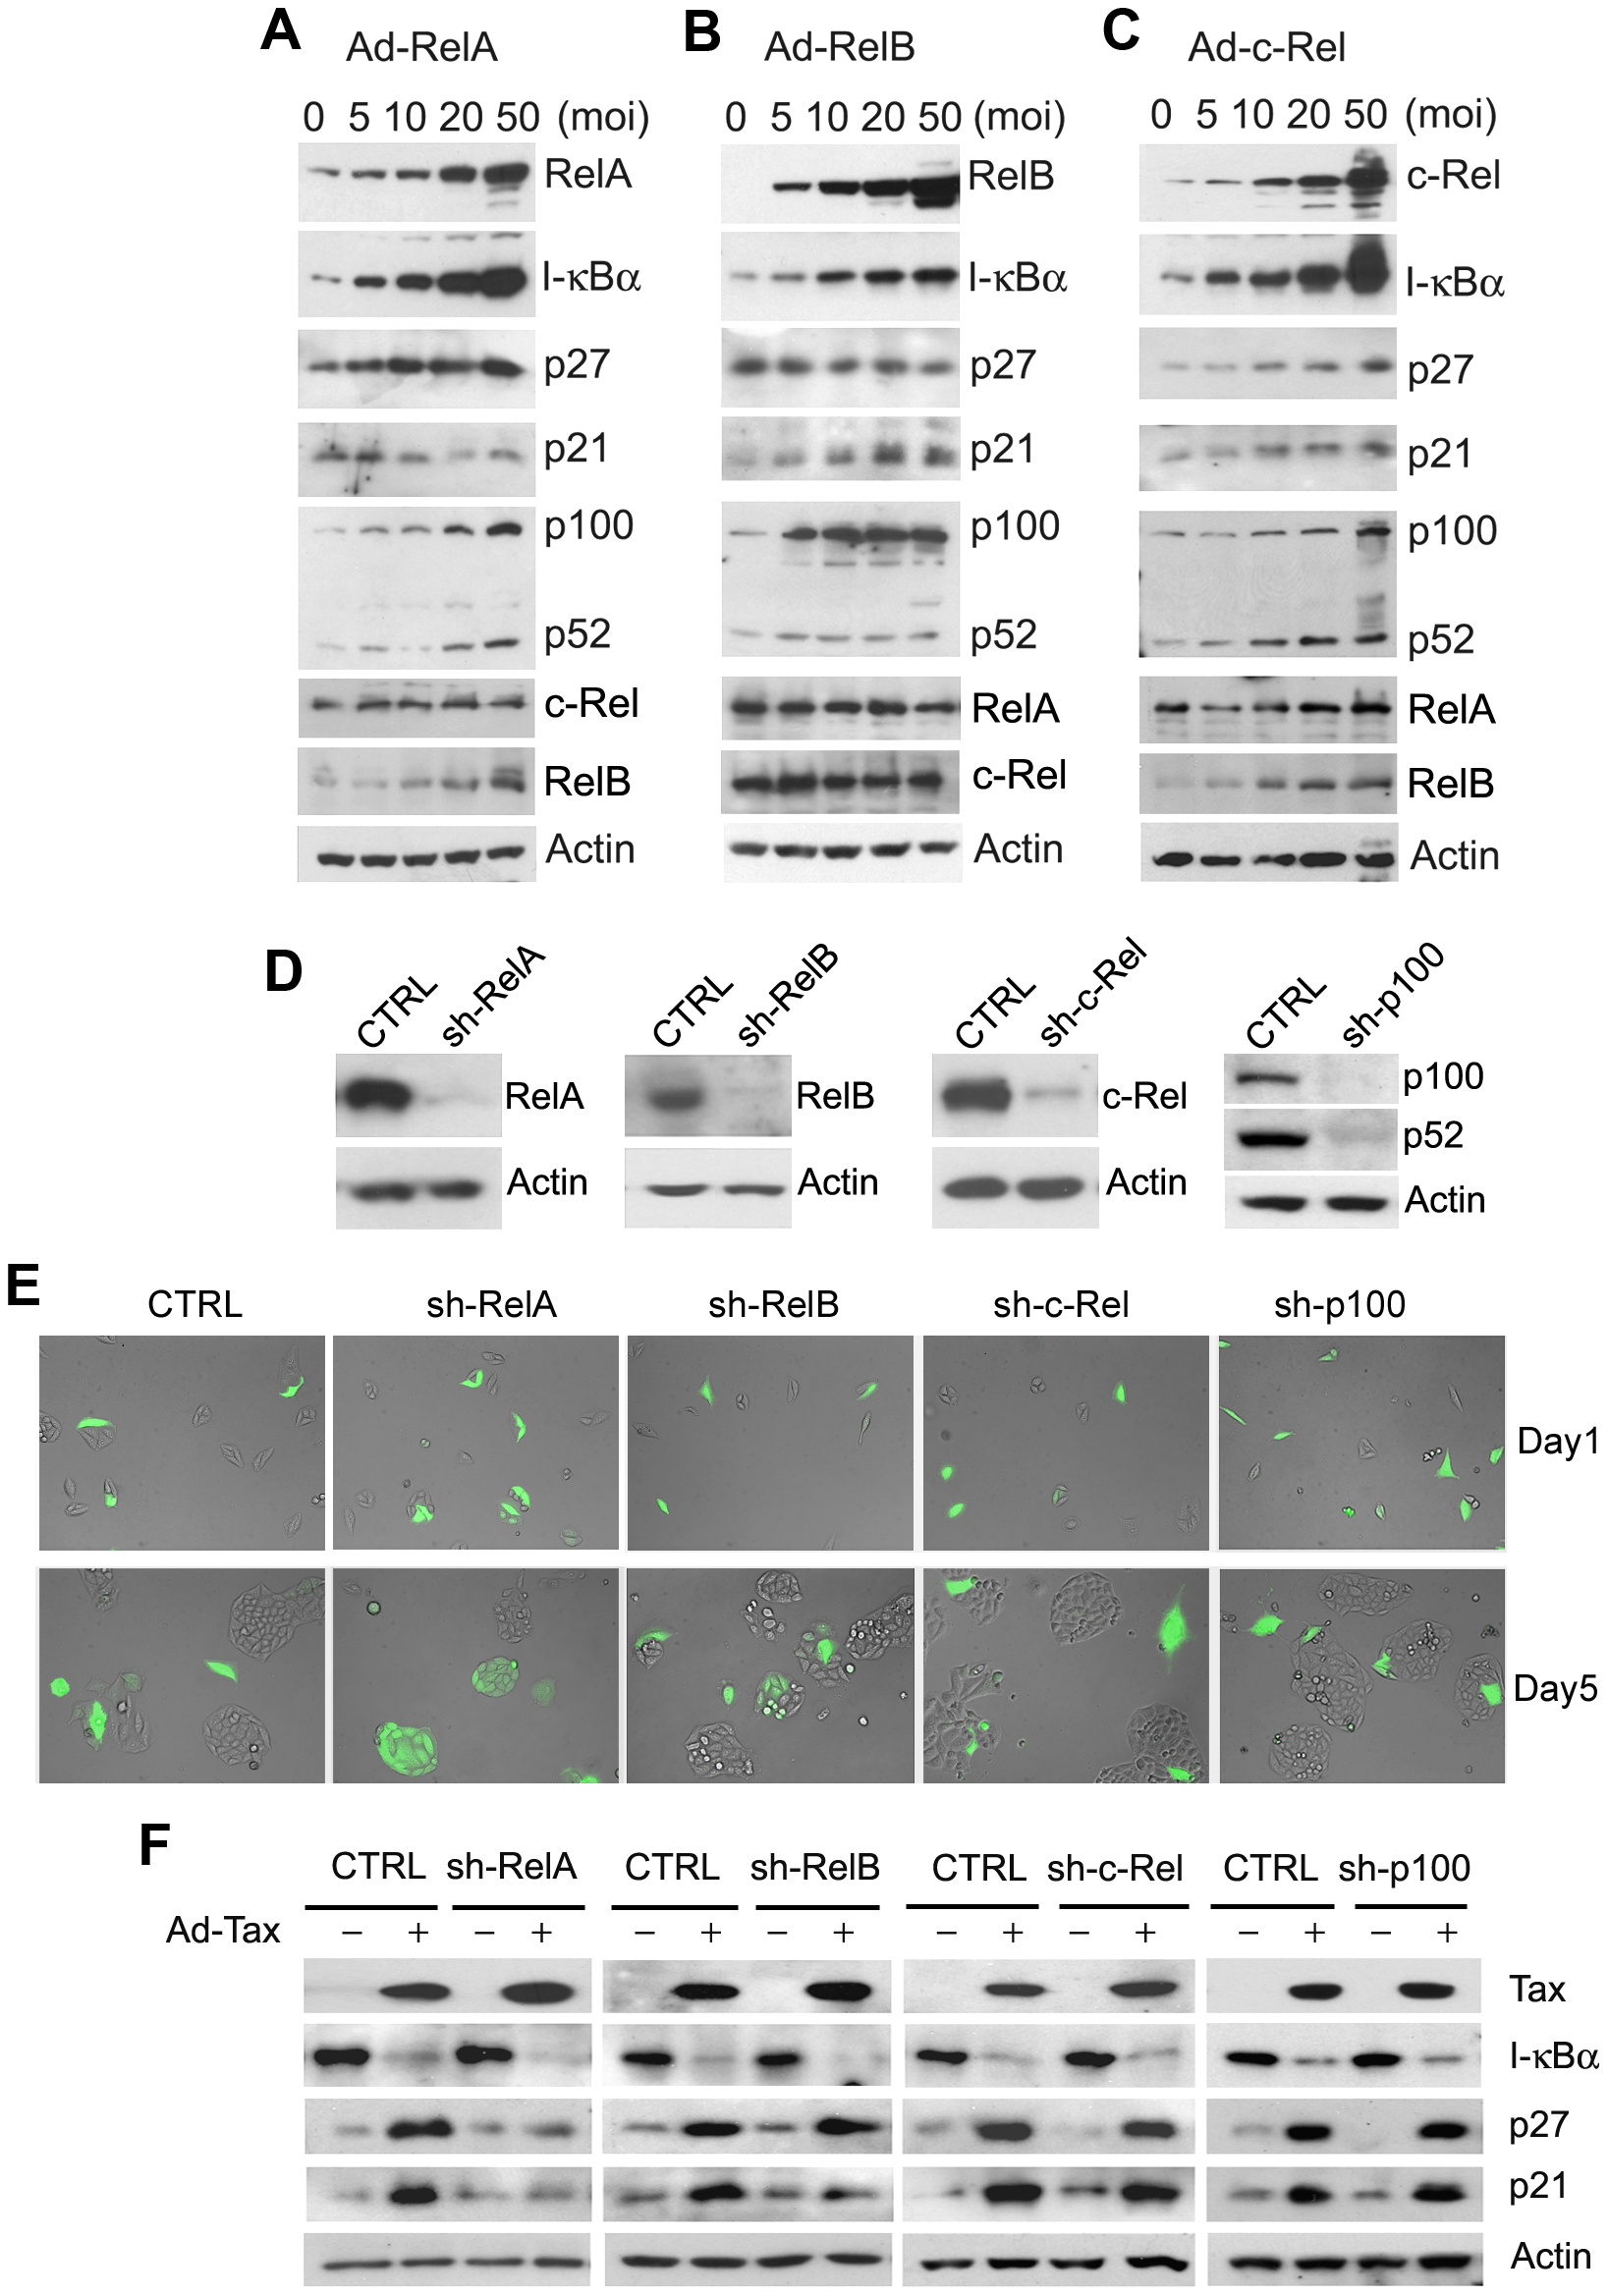 RelA is the major downstream effector of Tax-induced senescence.